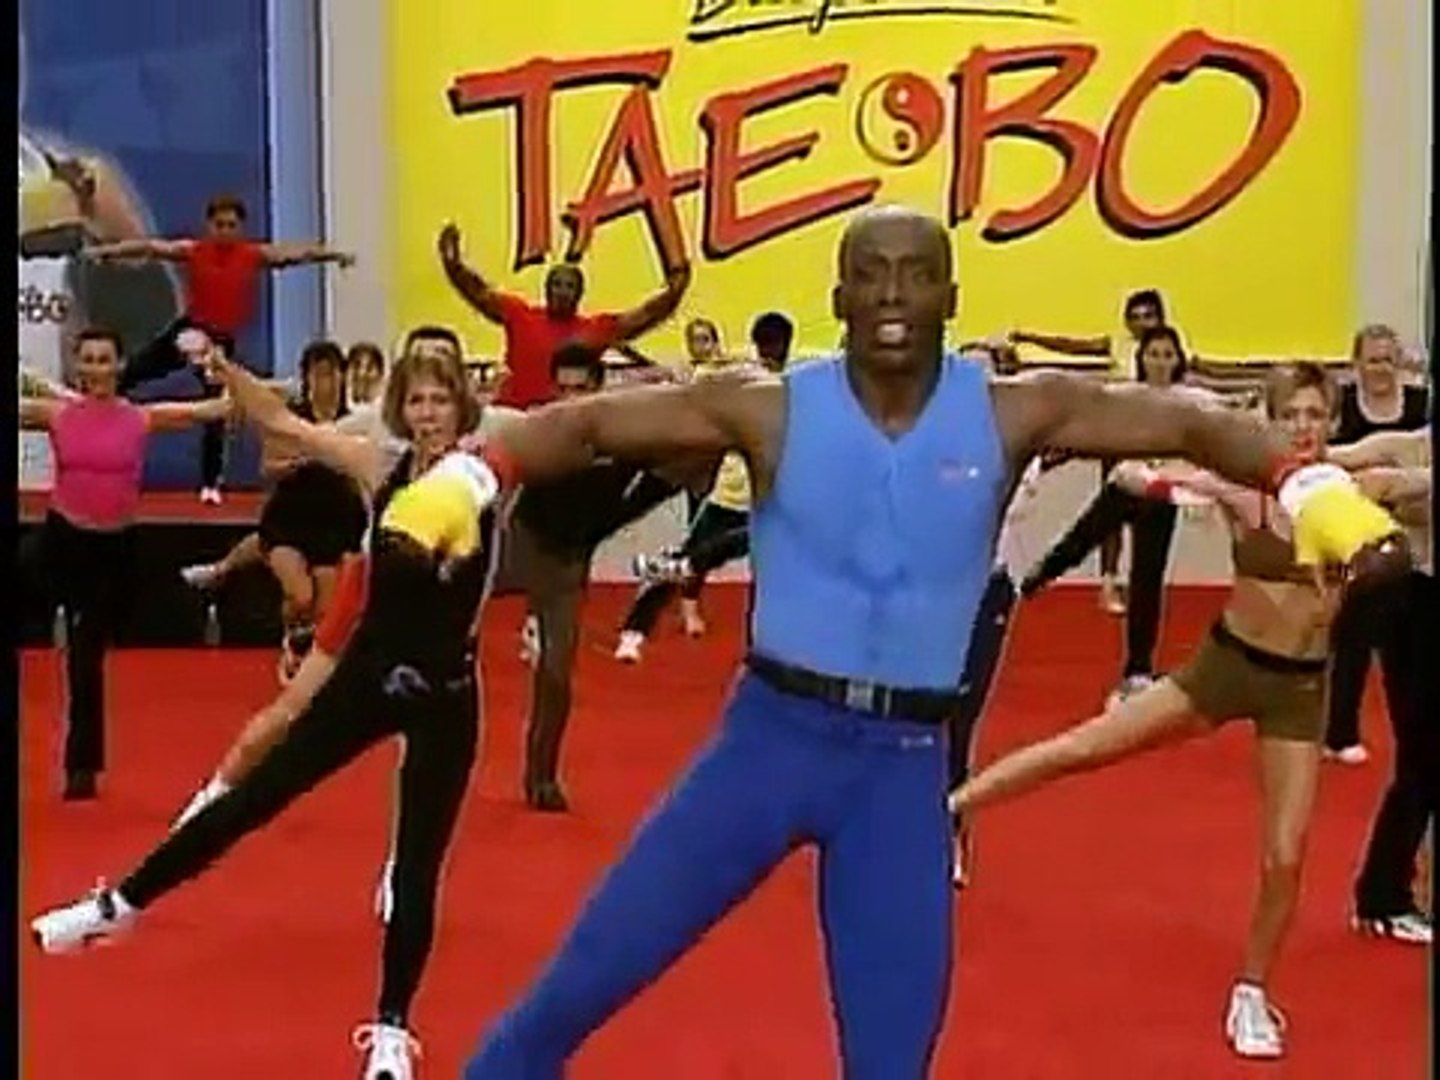 Billy Banks in one of his Tae Bo training videos. He is an important part of the history of physical training.